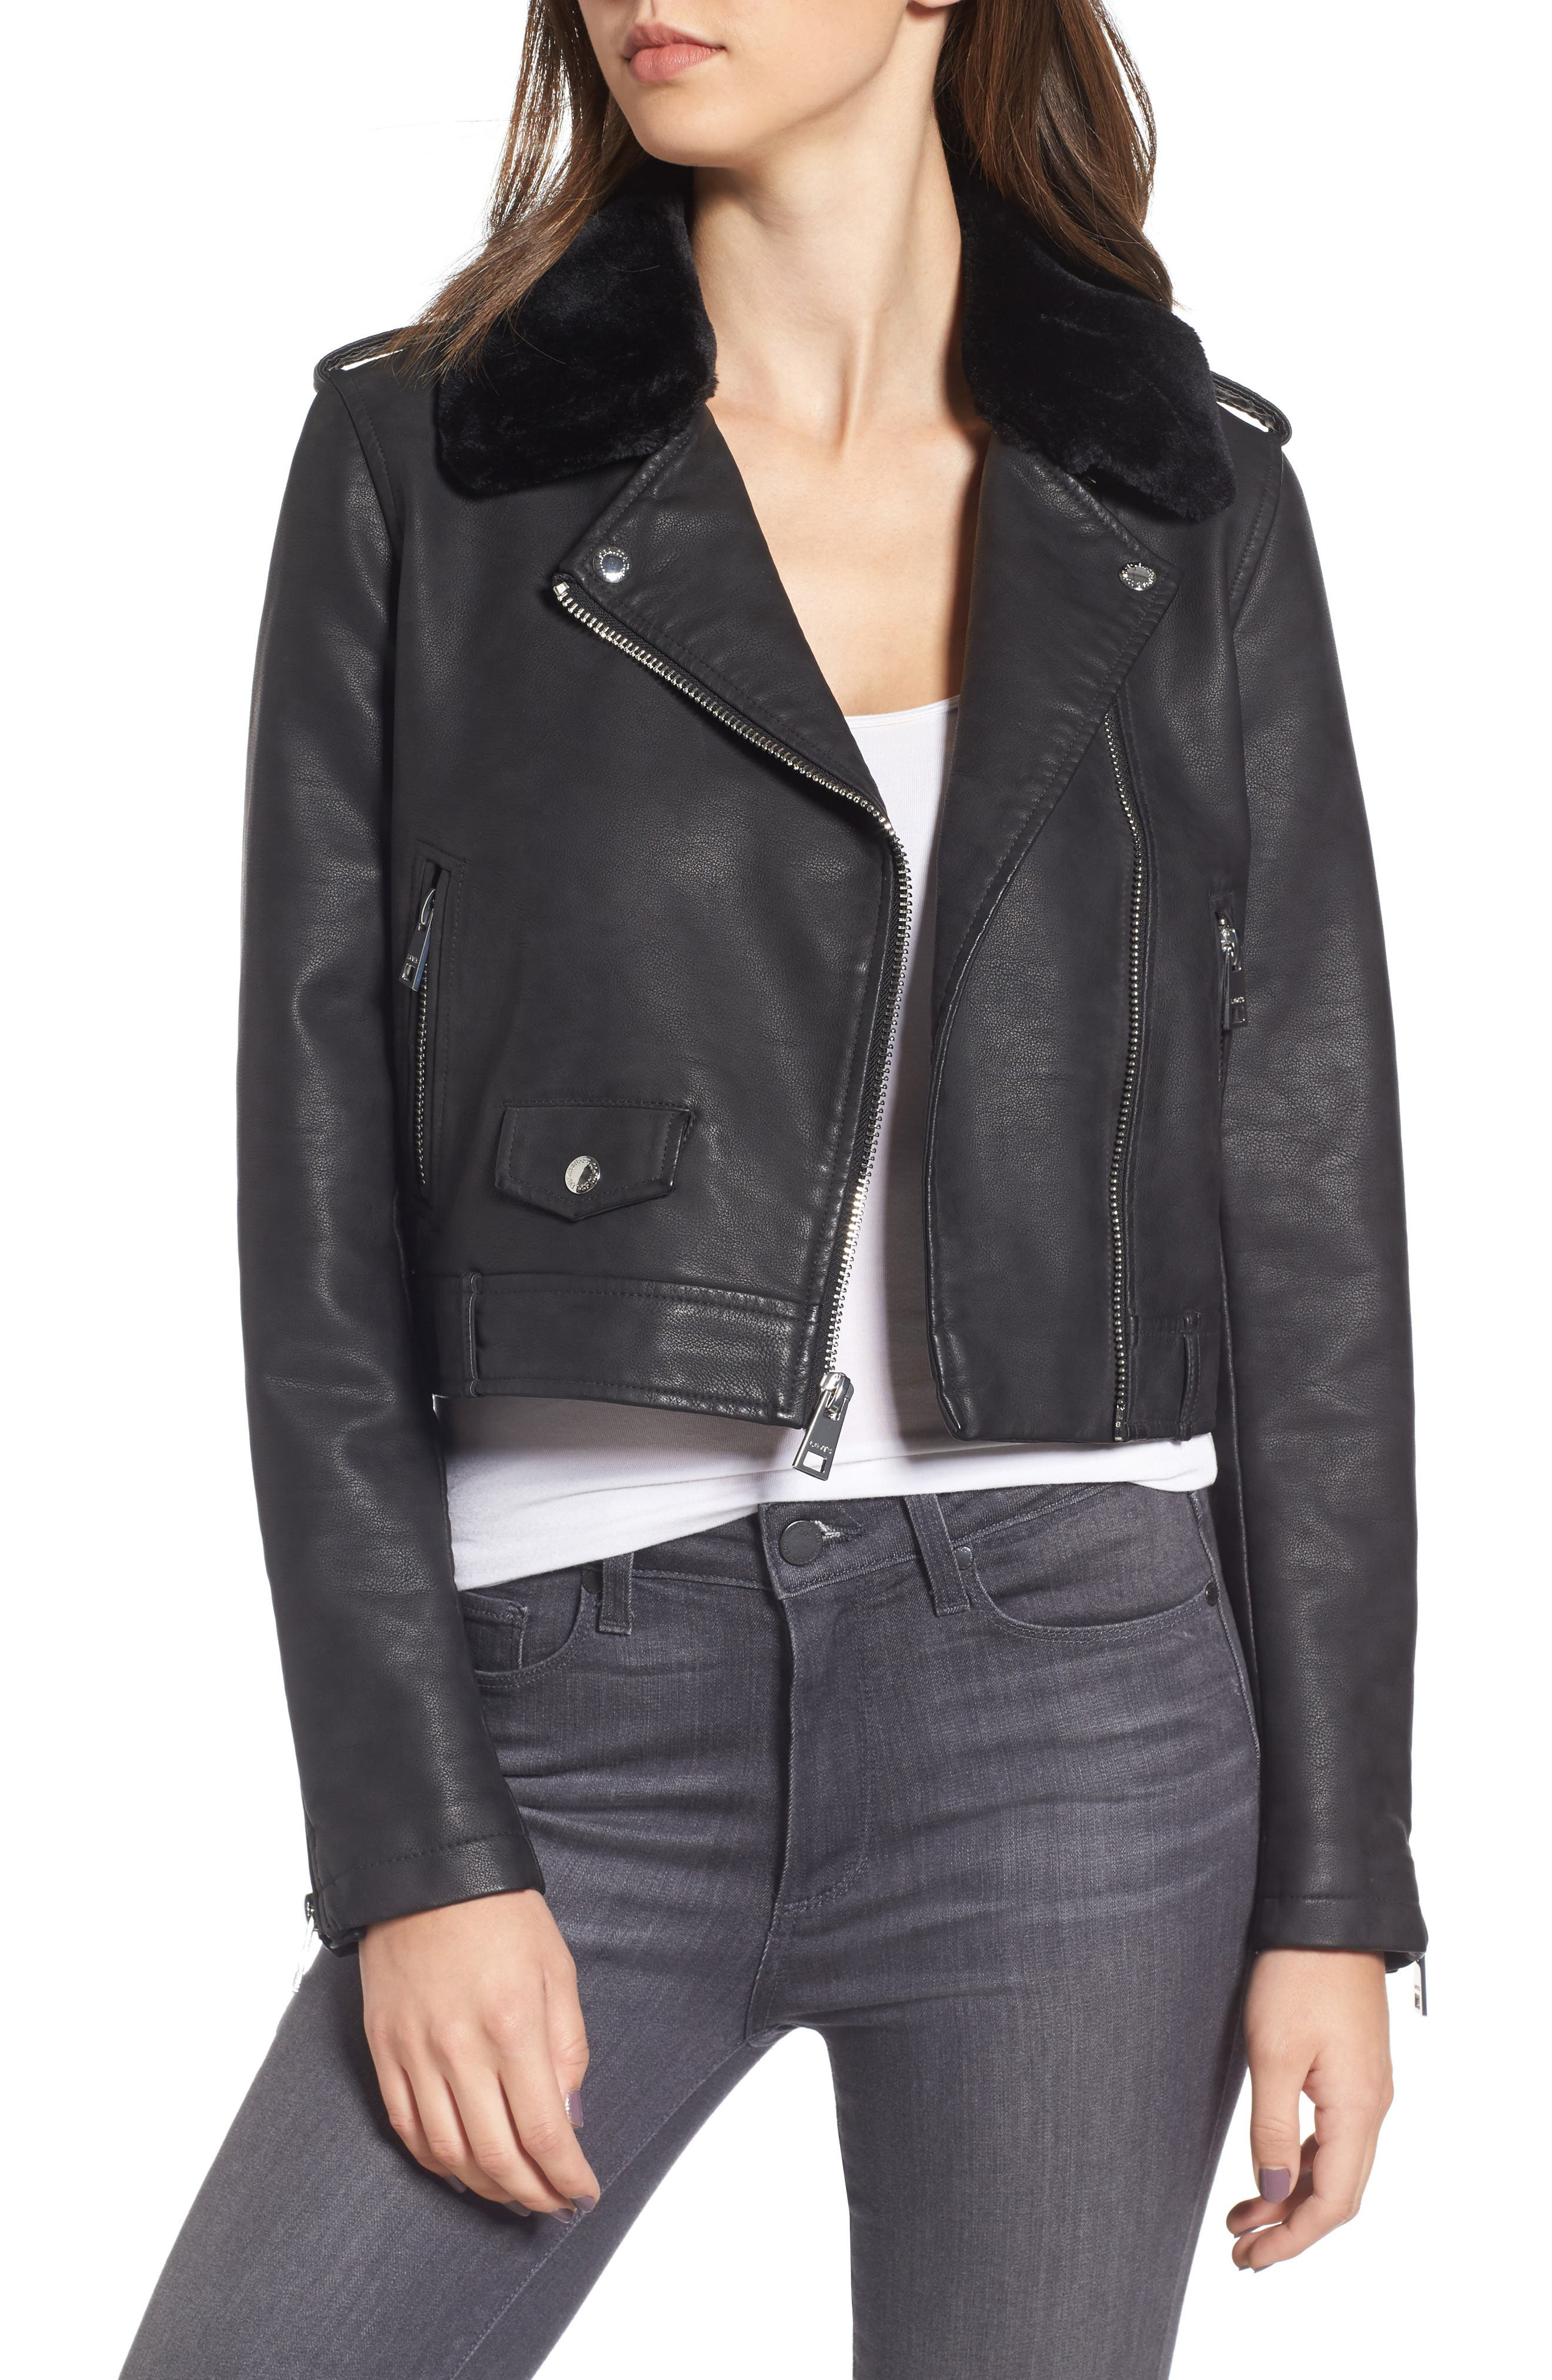 Main Image - Levis® Sherpa Faux Leather Moto Jacket with Faux Fur Collar